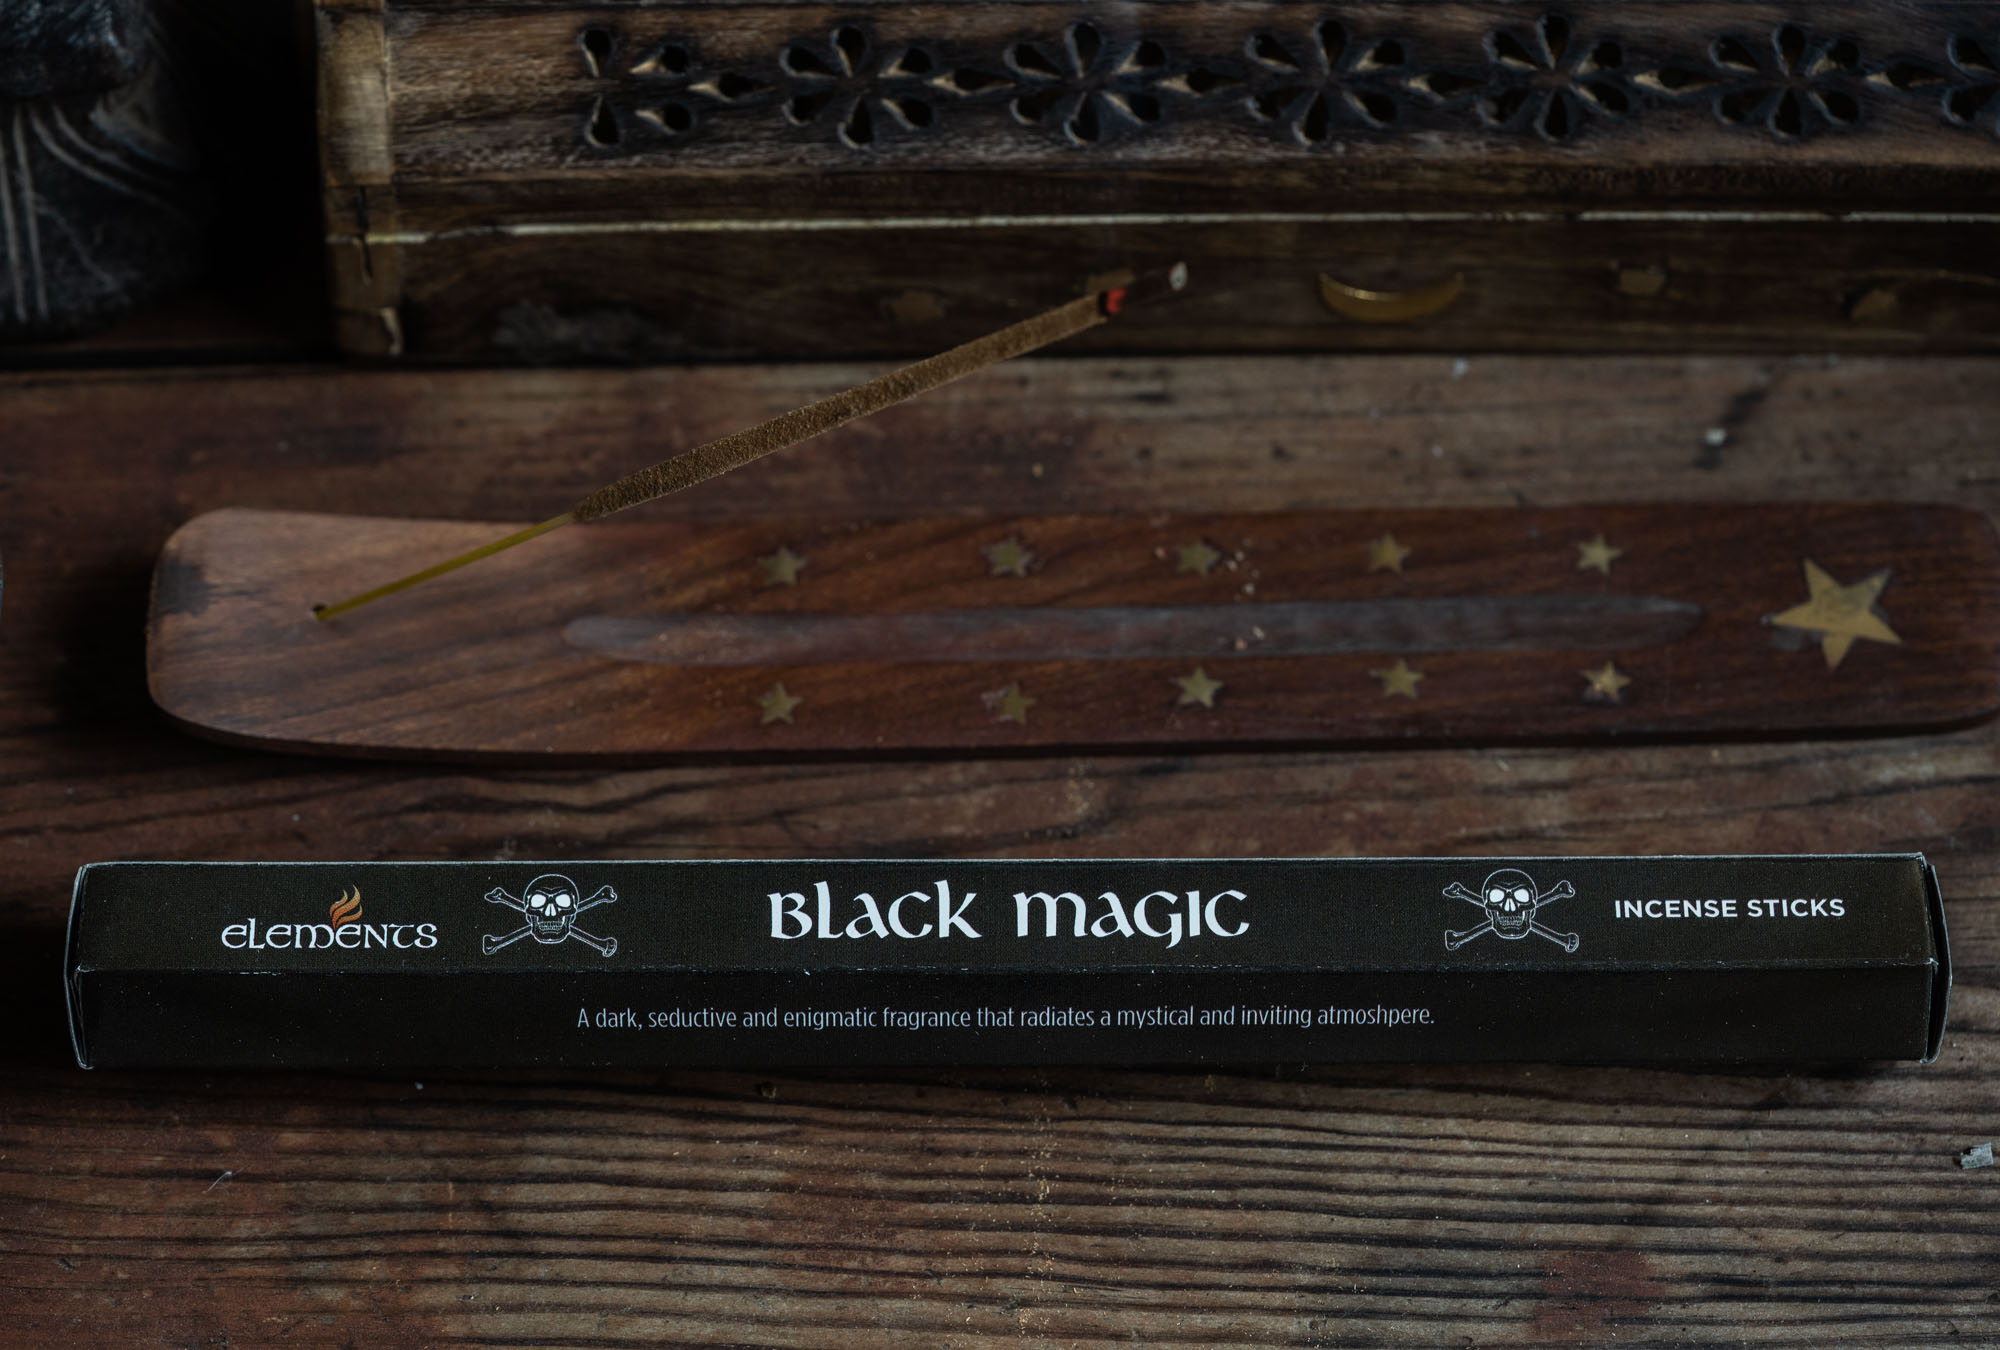 ELEMENTS BLACK MAGIC INCENSE STICKS 1paketti